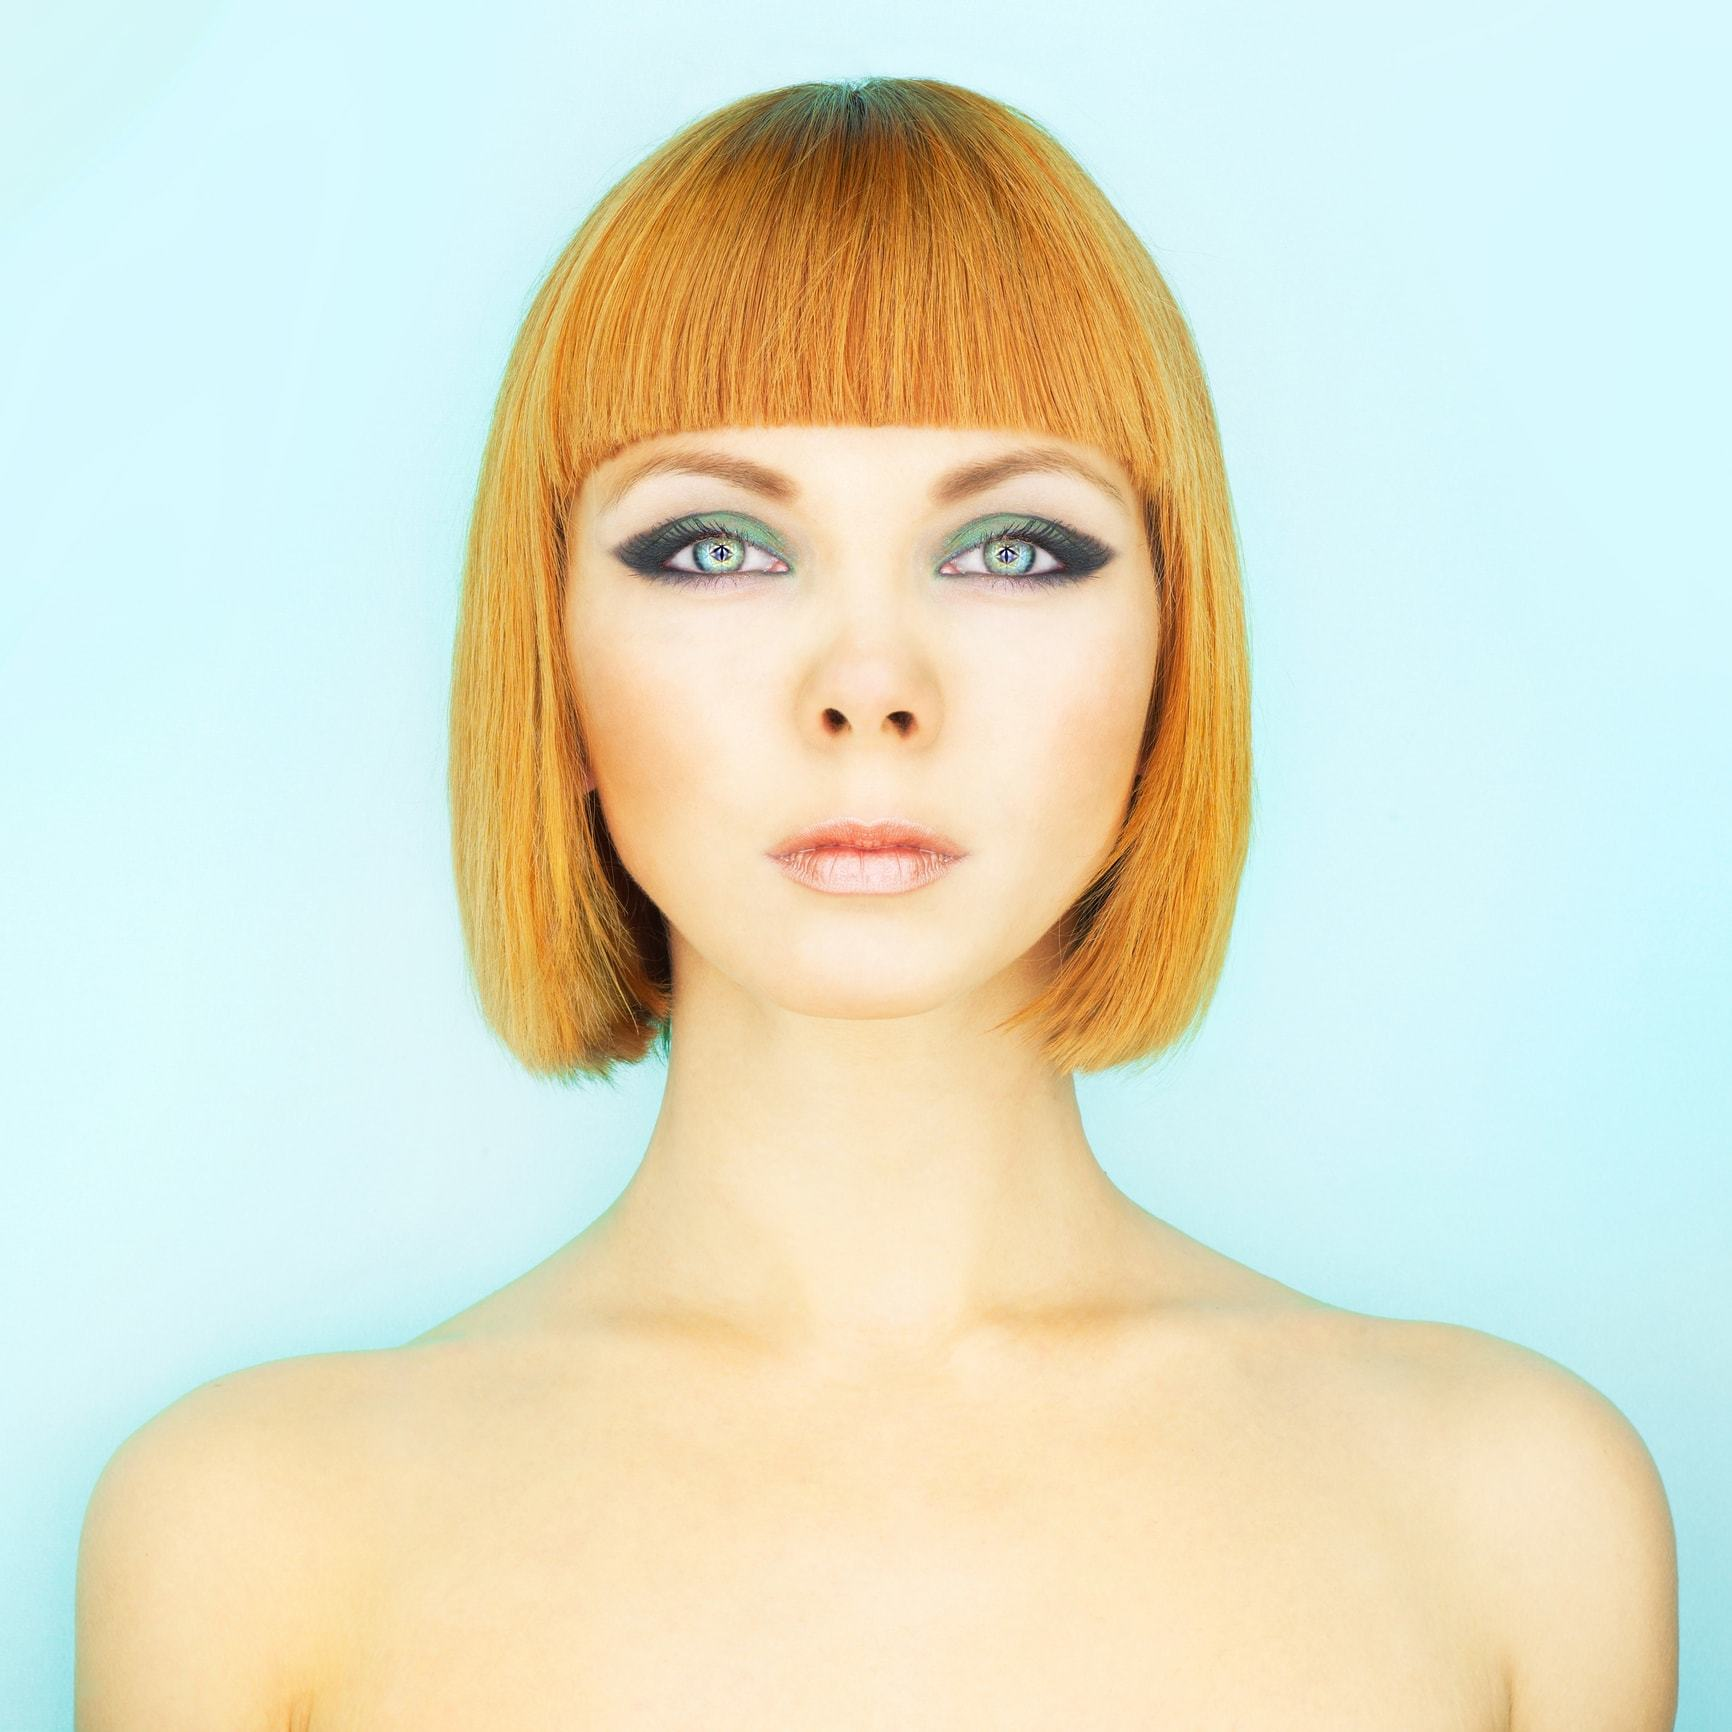 Latest Edgy Short Bangs For Angled Faces-20 Looks to Try 5